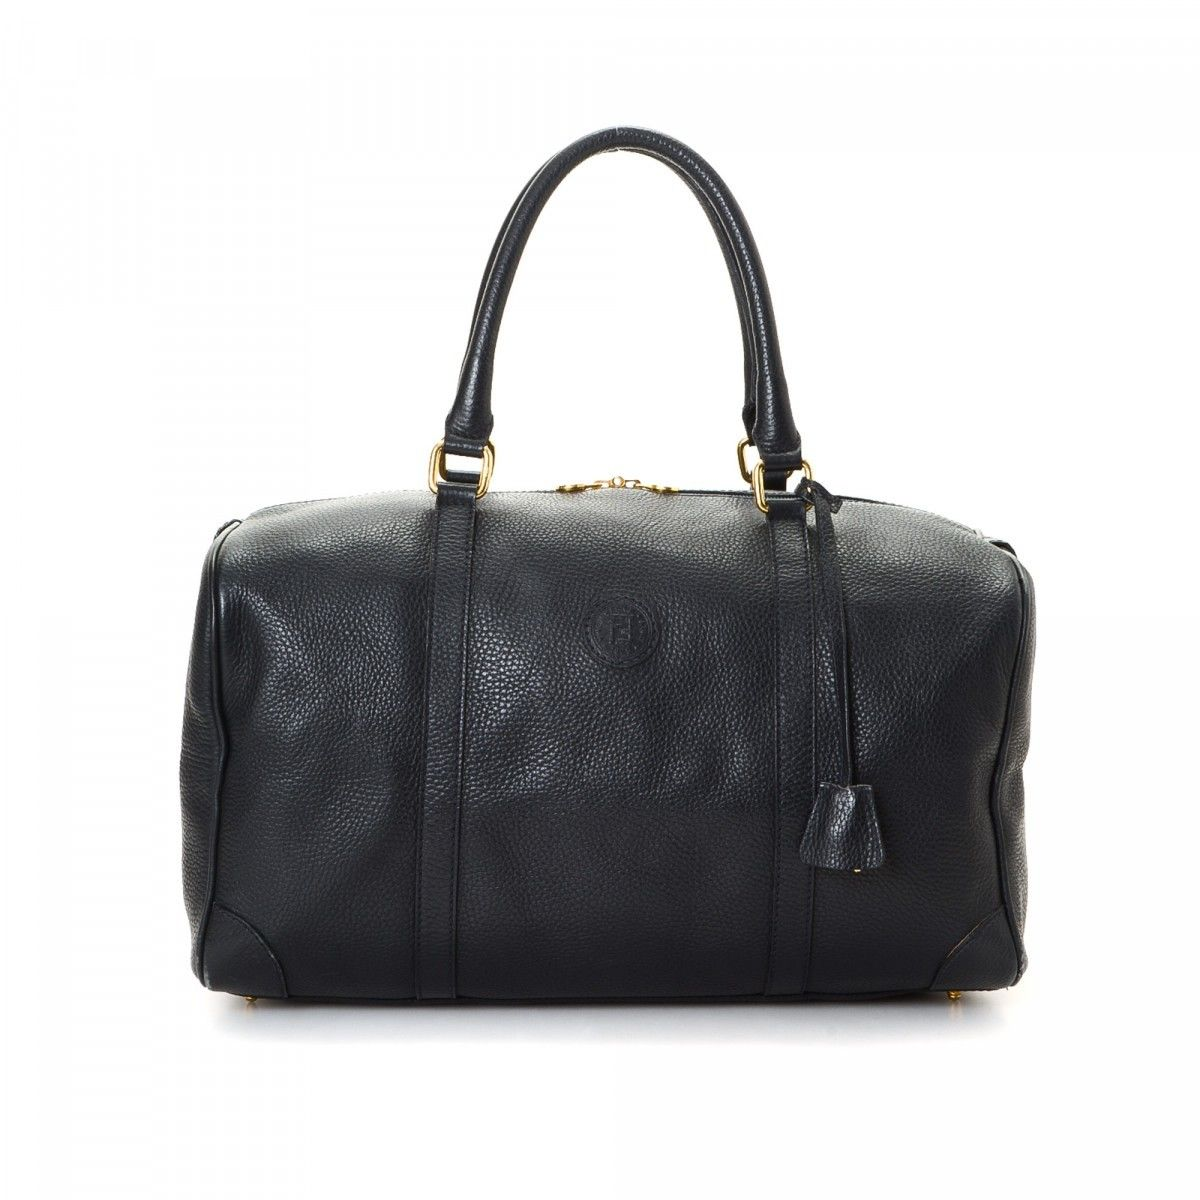 00cfe0878c clearance fendi travel bag leather lxrandco pre owned luxury vintage fe1fd  085b8